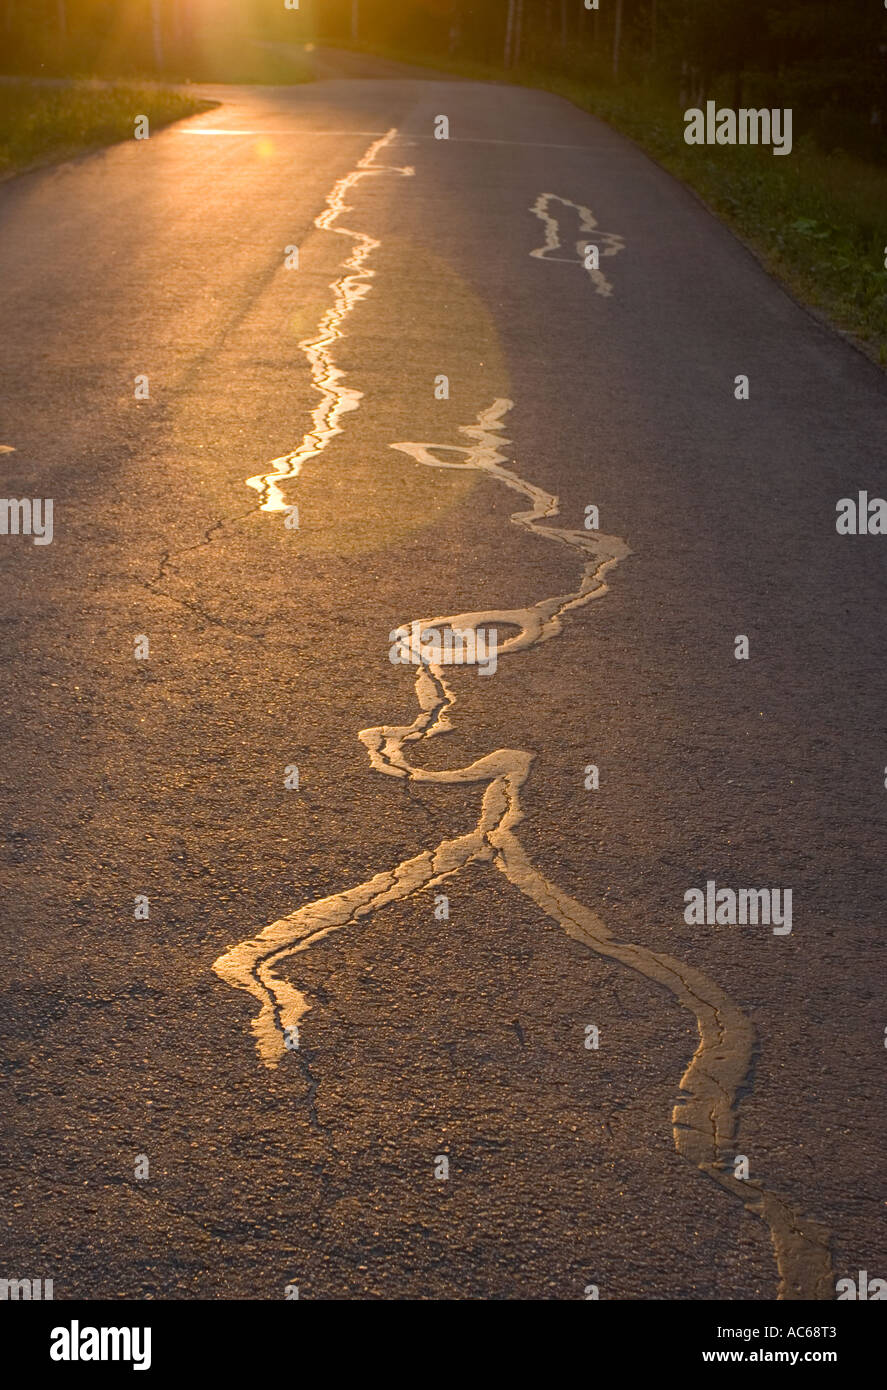 Cracks in tarmac, fixed with tar, glowing in evening light - Stock Image